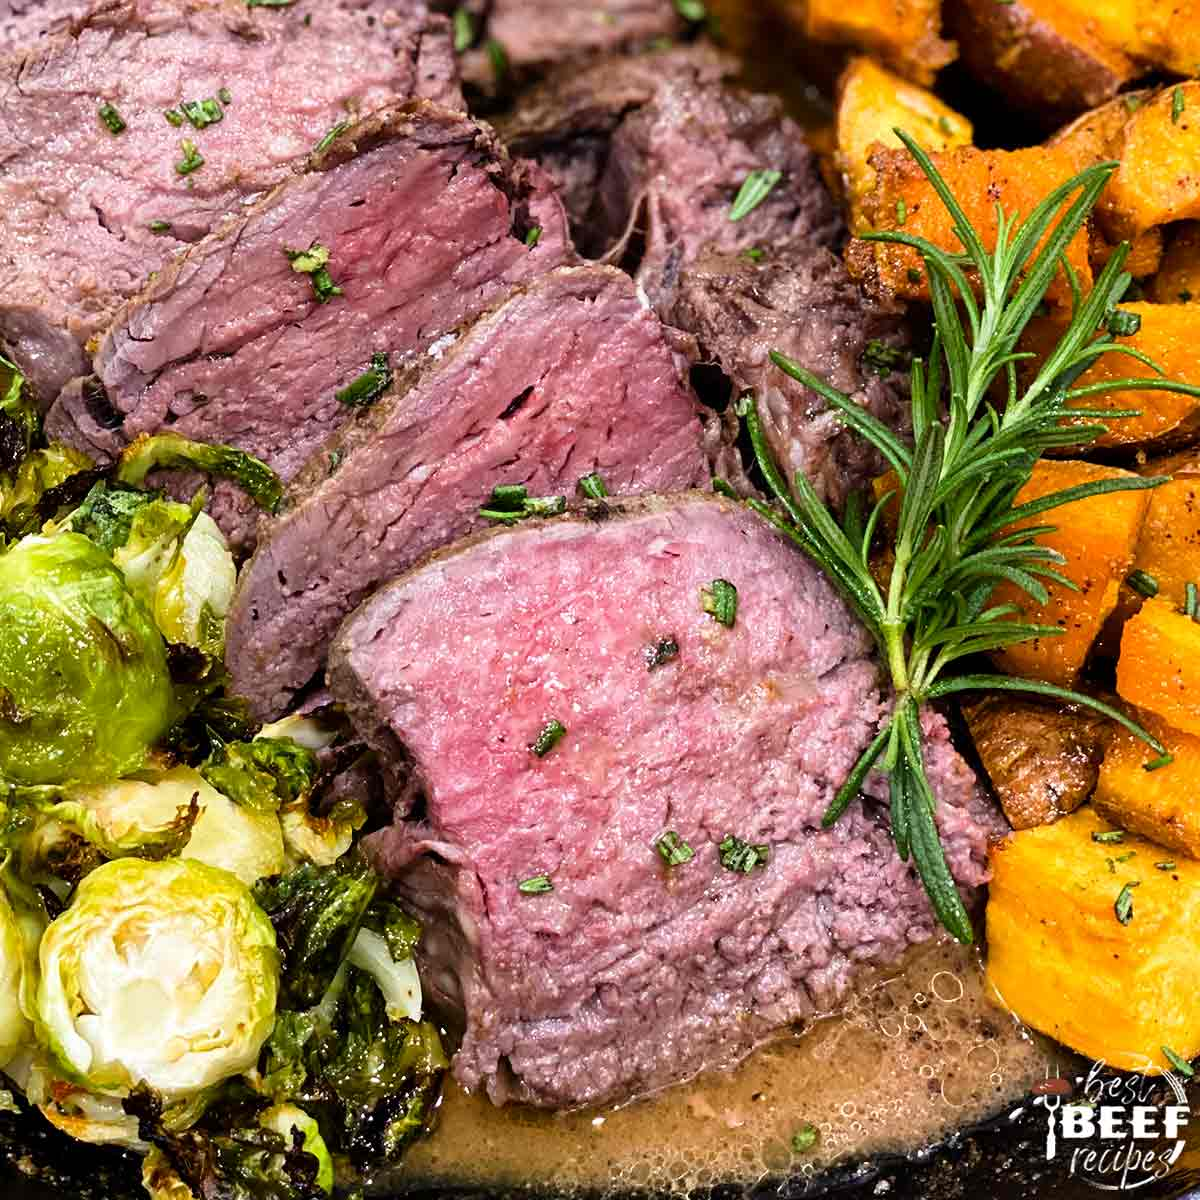 Sous vide tenderloin sliced in a skillet with sweet potatoes and brussels sprouts